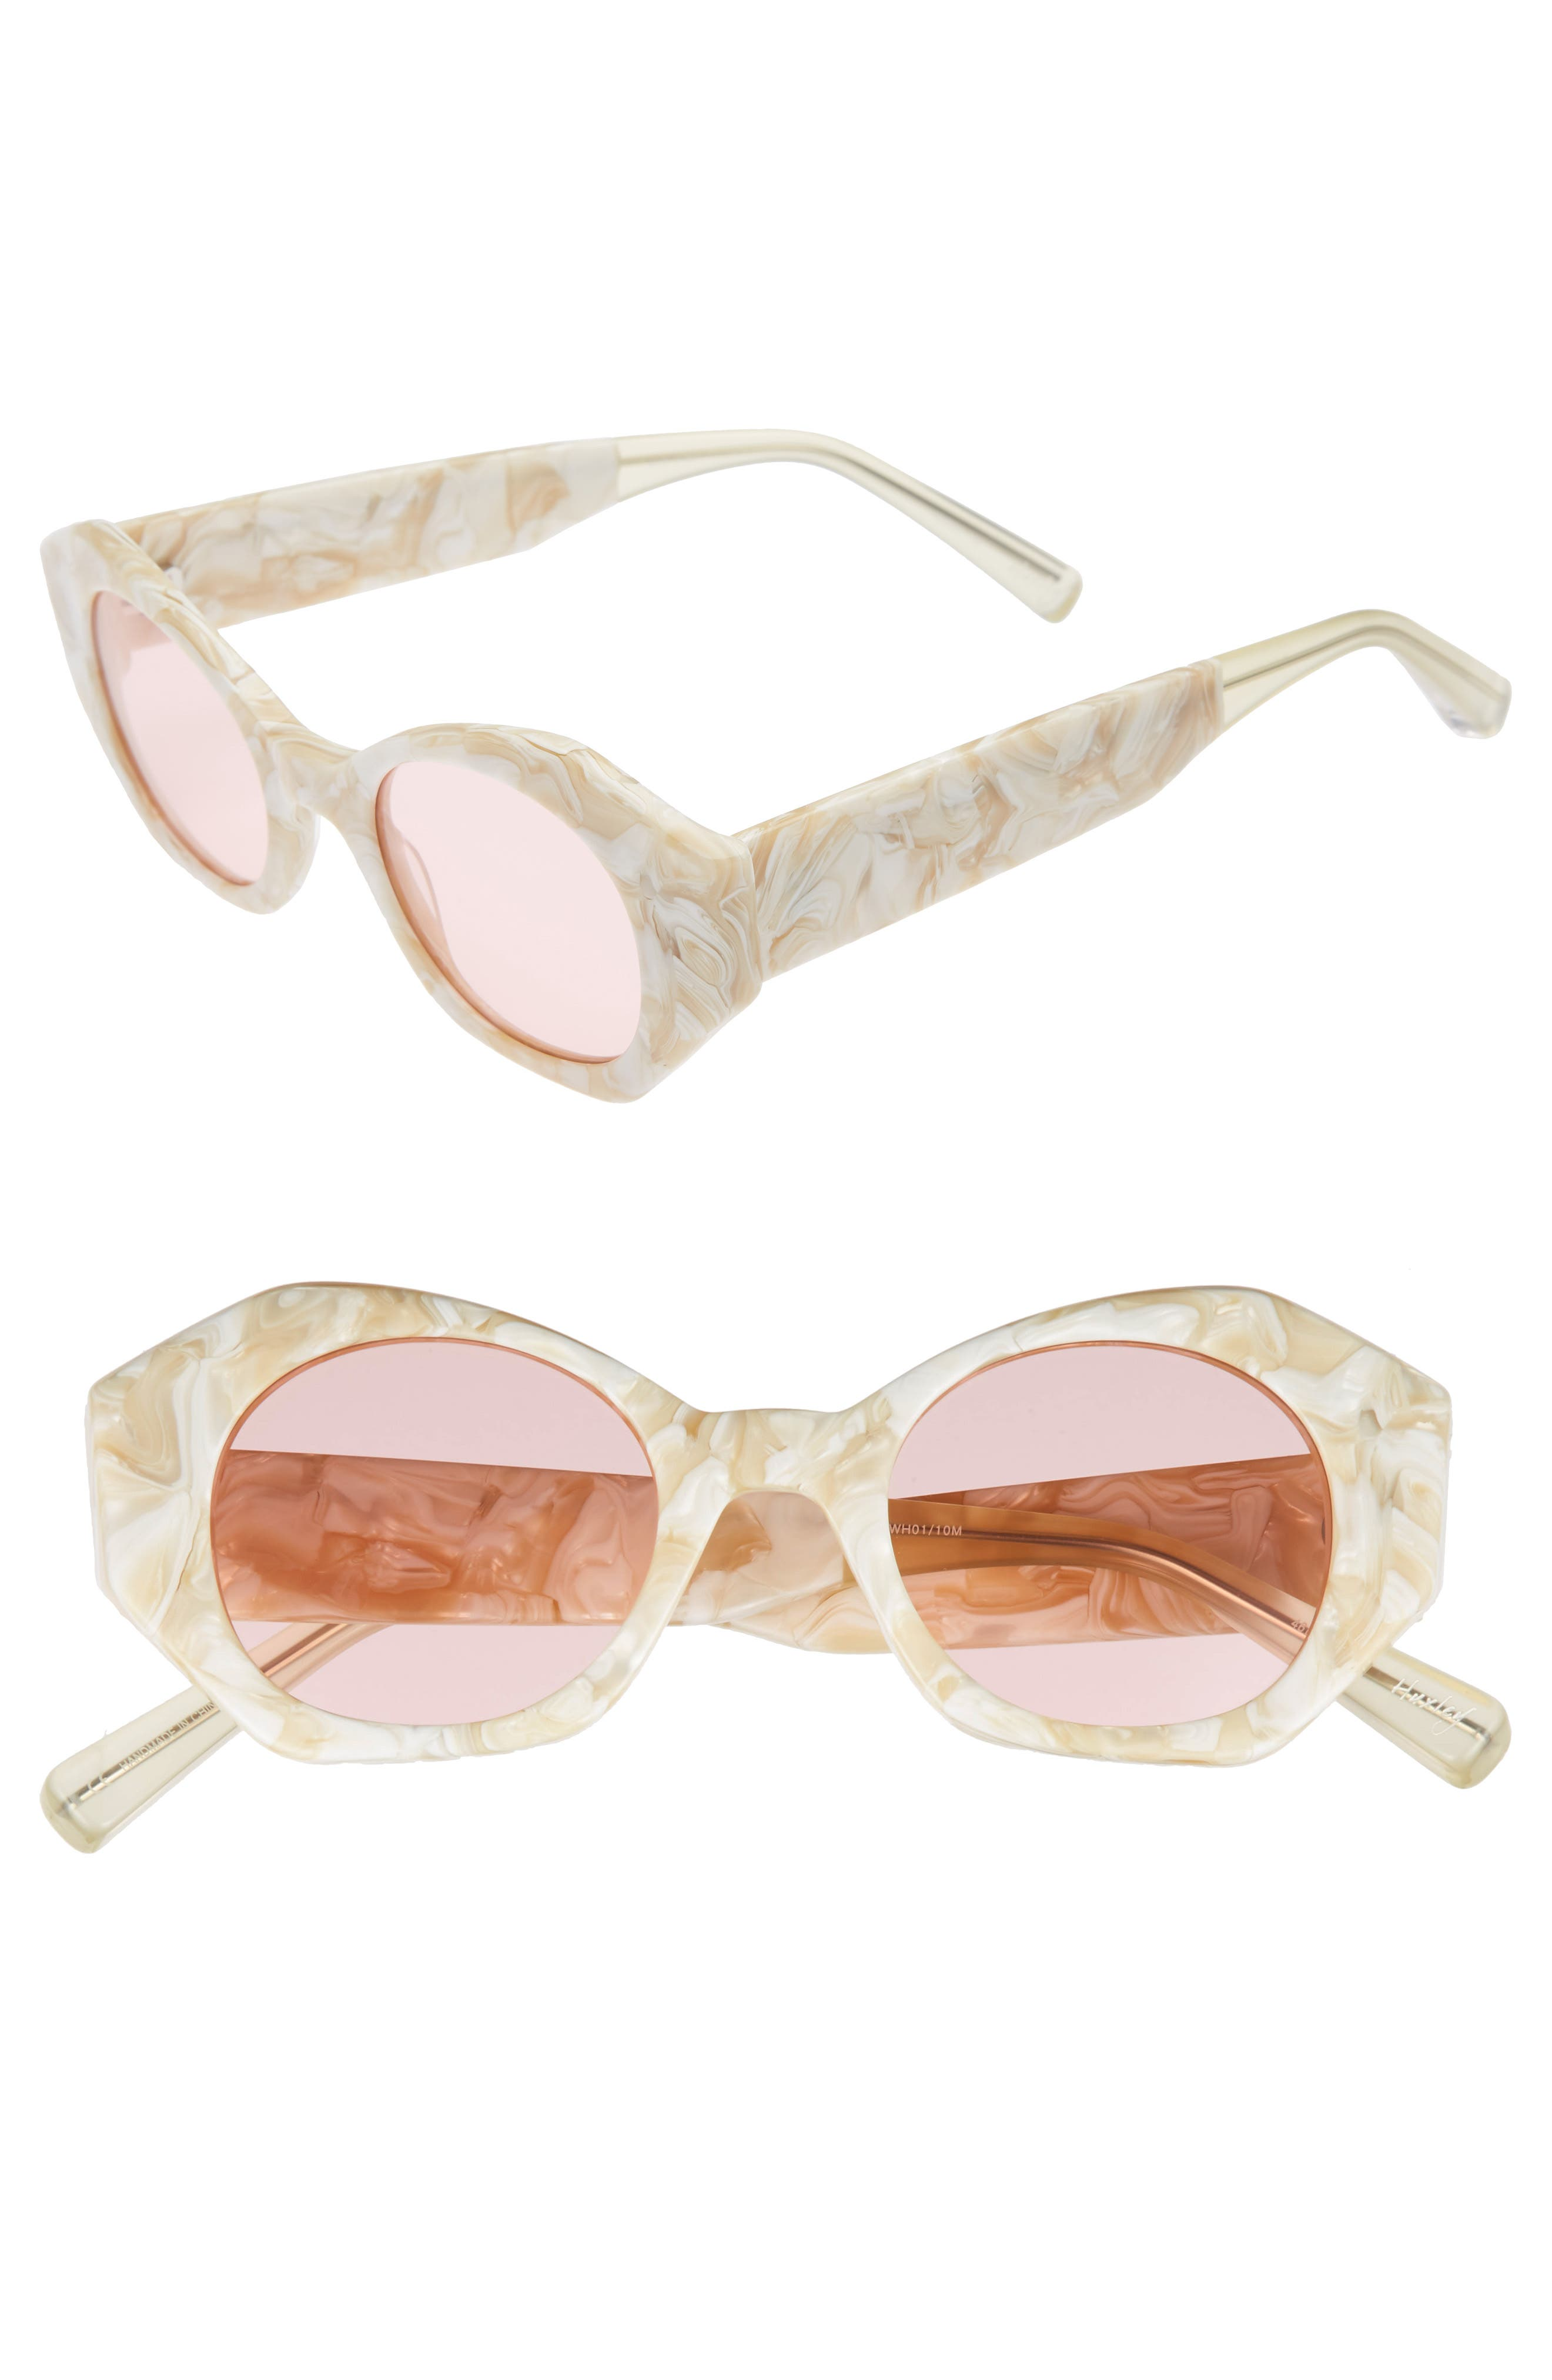 Huxley 46mm Geometric Sunglasses,                             Main thumbnail 2, color,